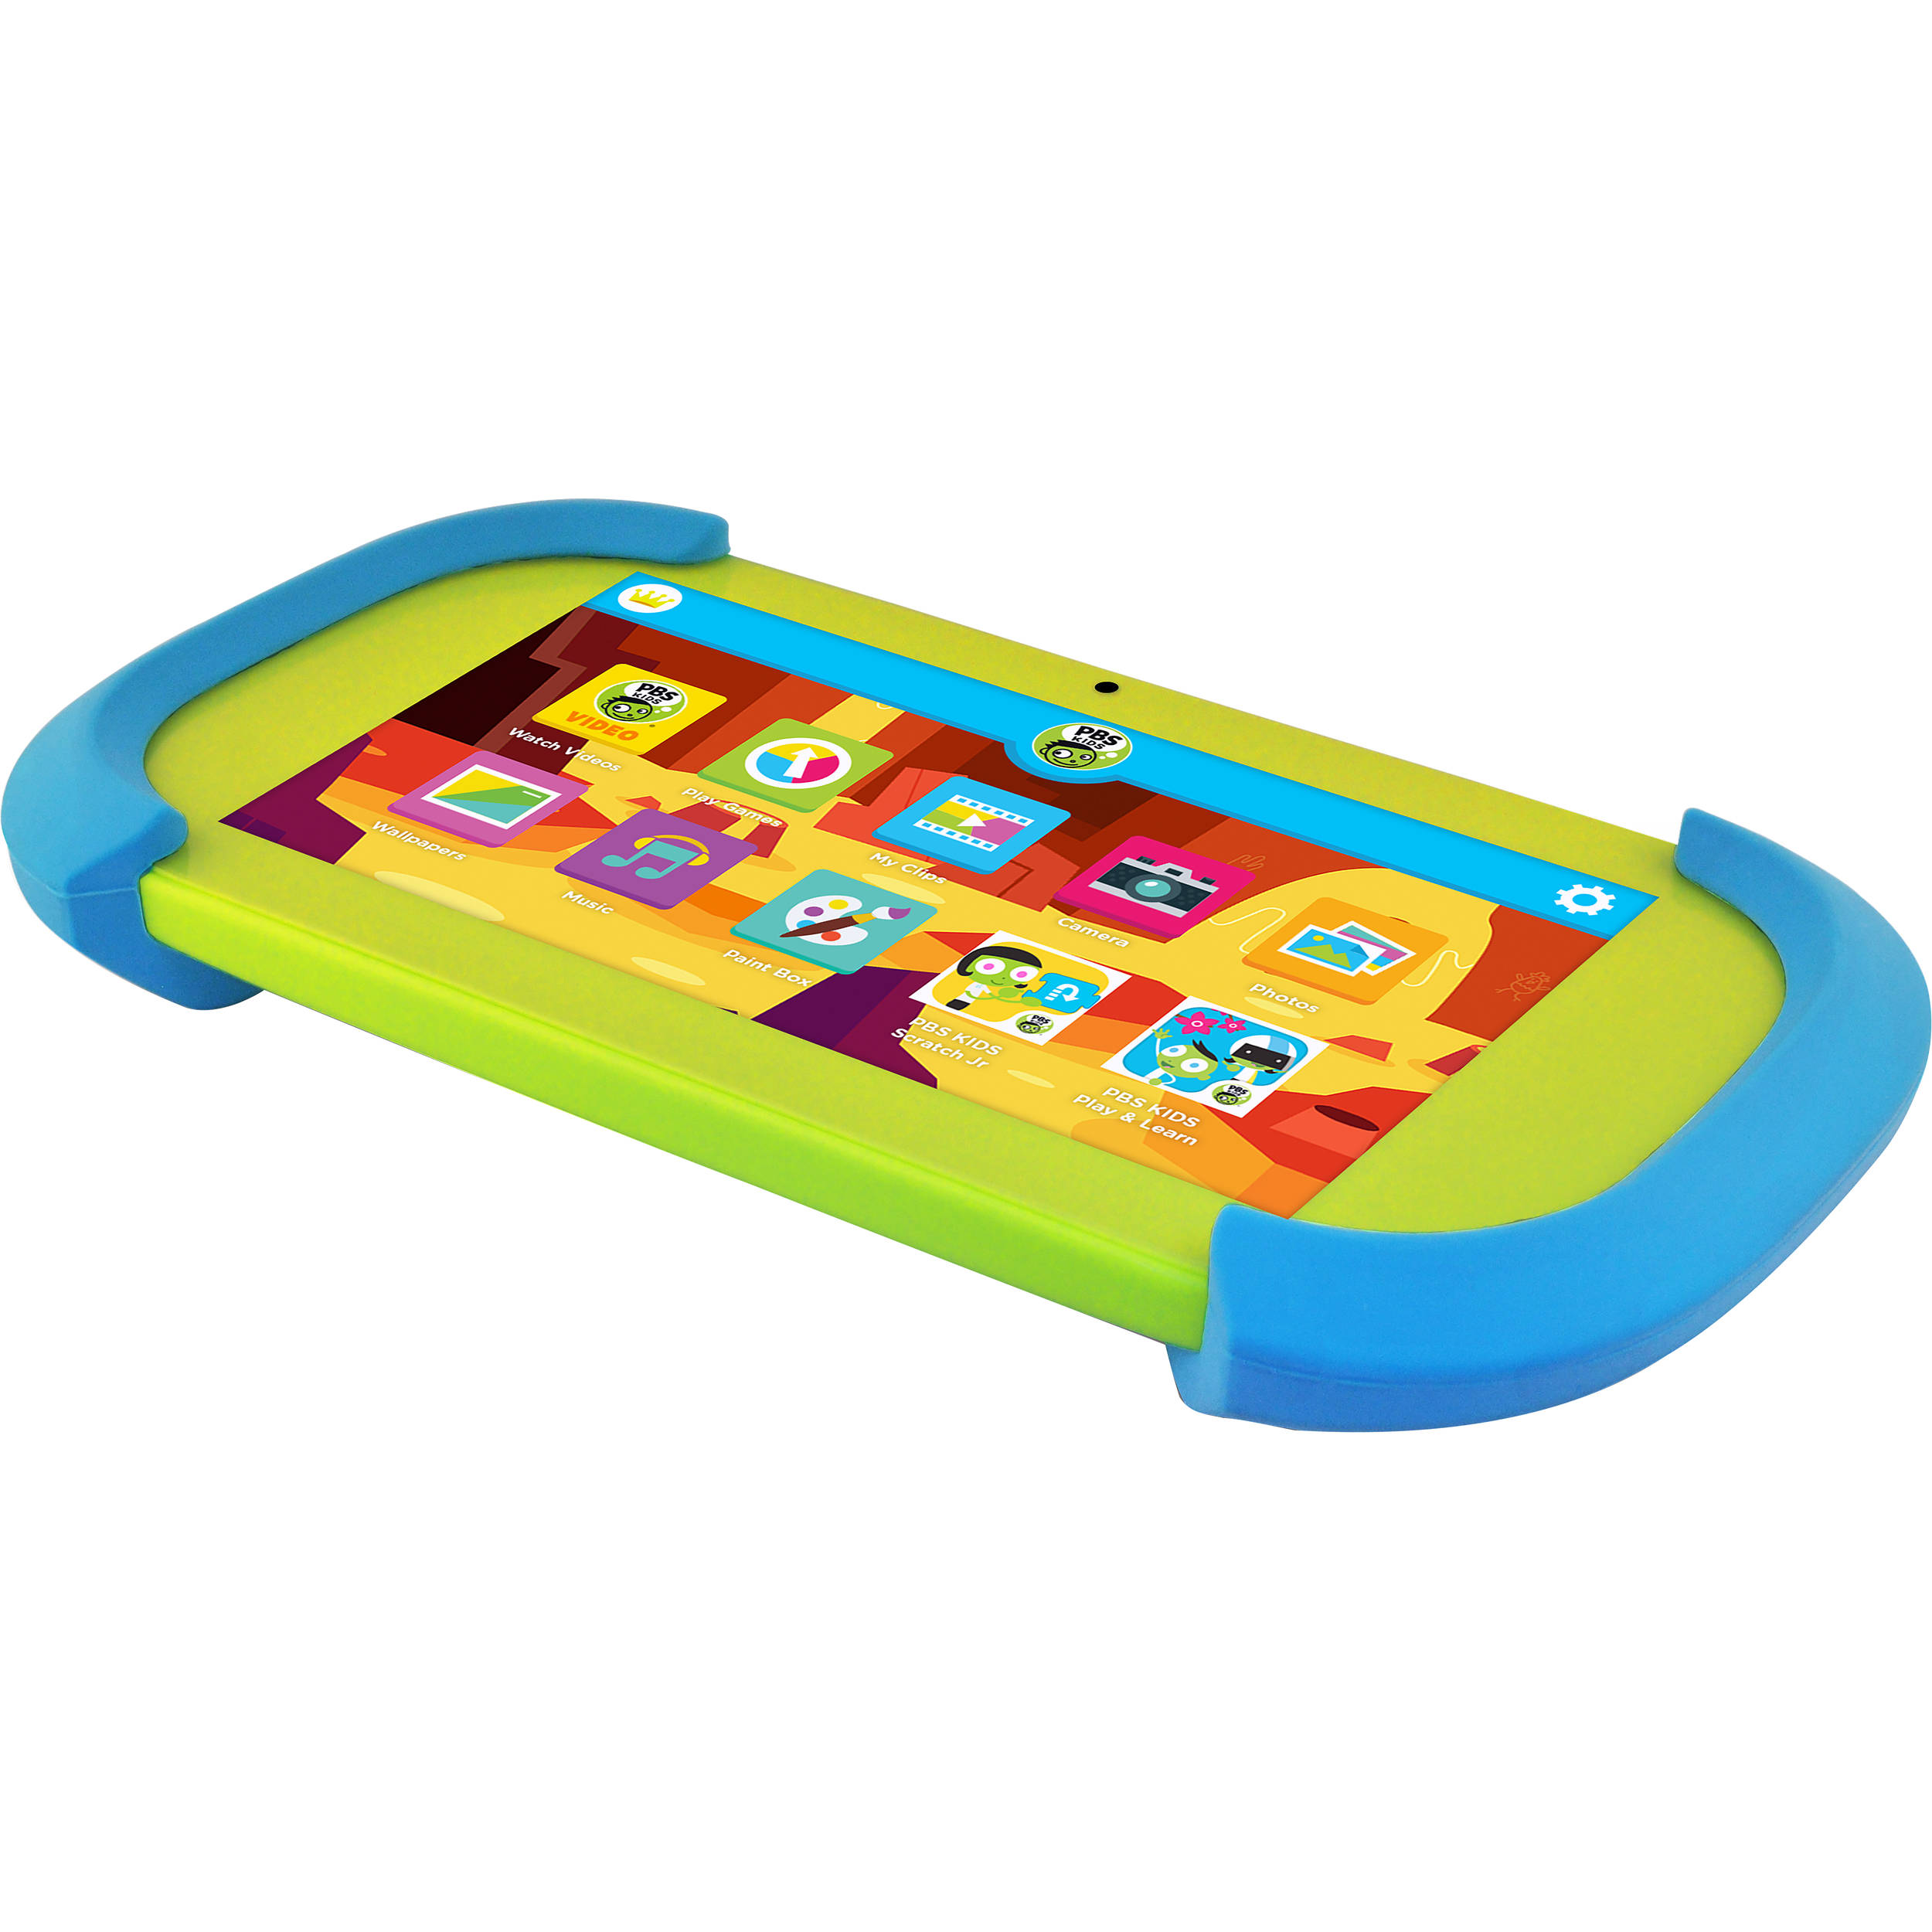 Ematic PBS Playtime Pad 7